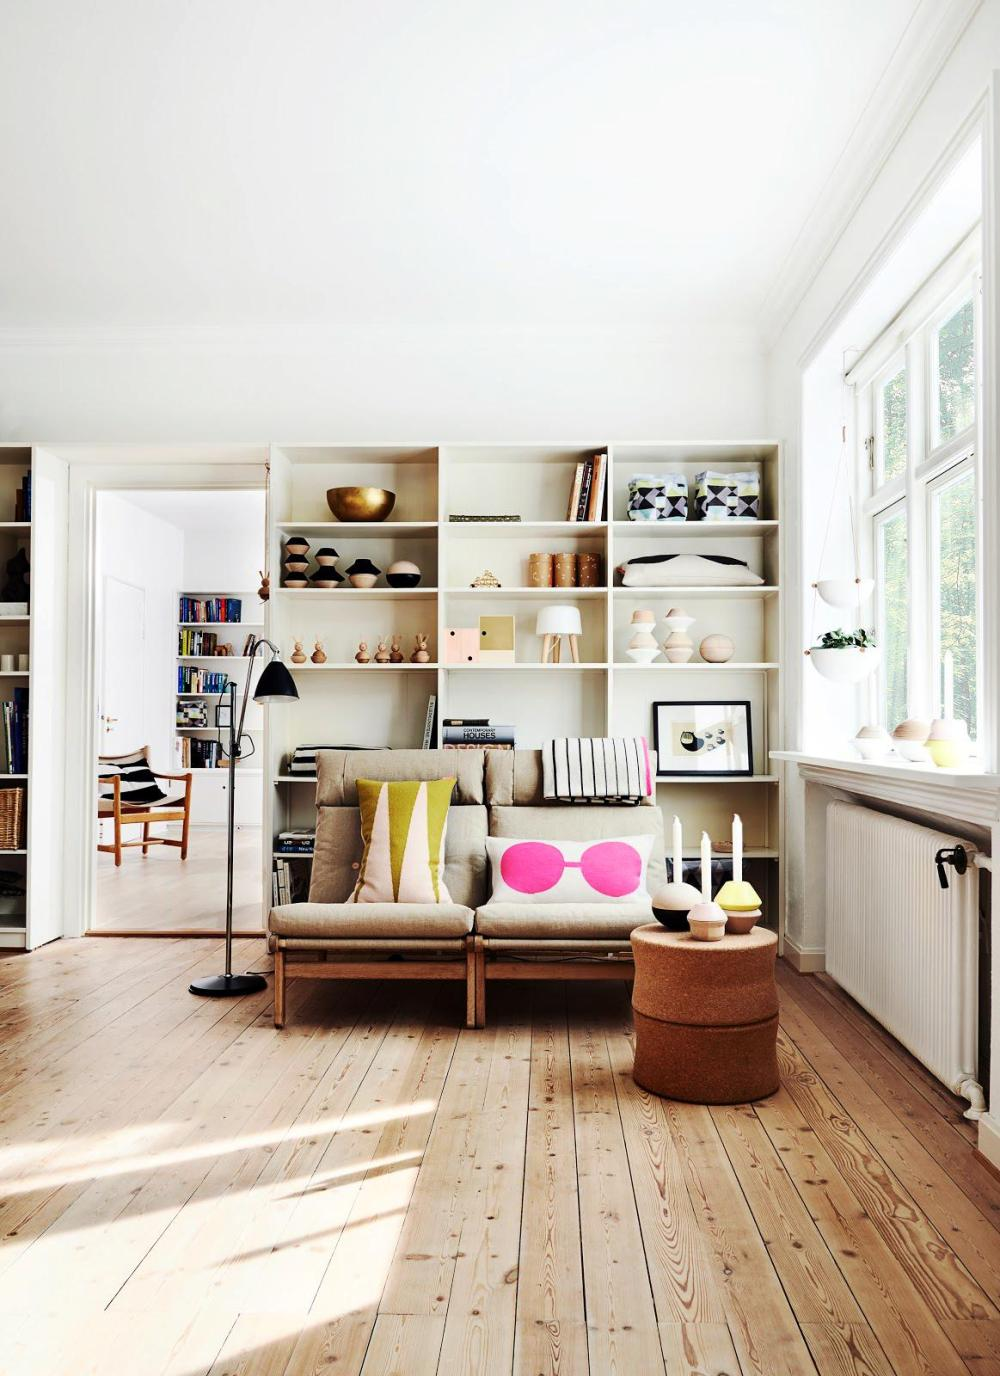 10 Cosy Homes That Make You Glad It